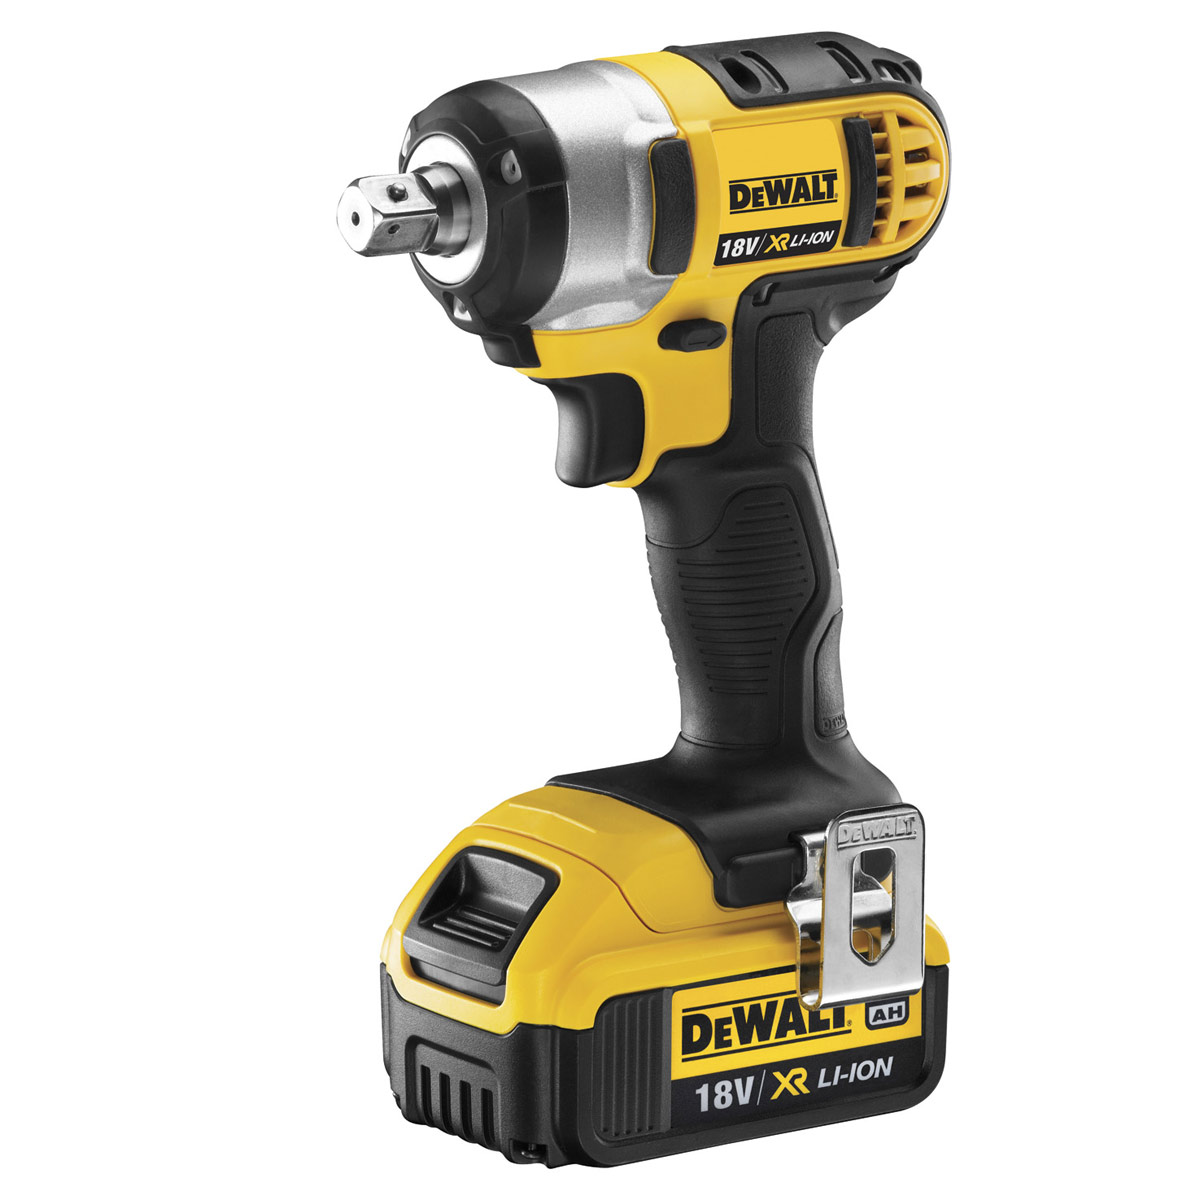 DeWalt Impact Wrench Spares and Parts